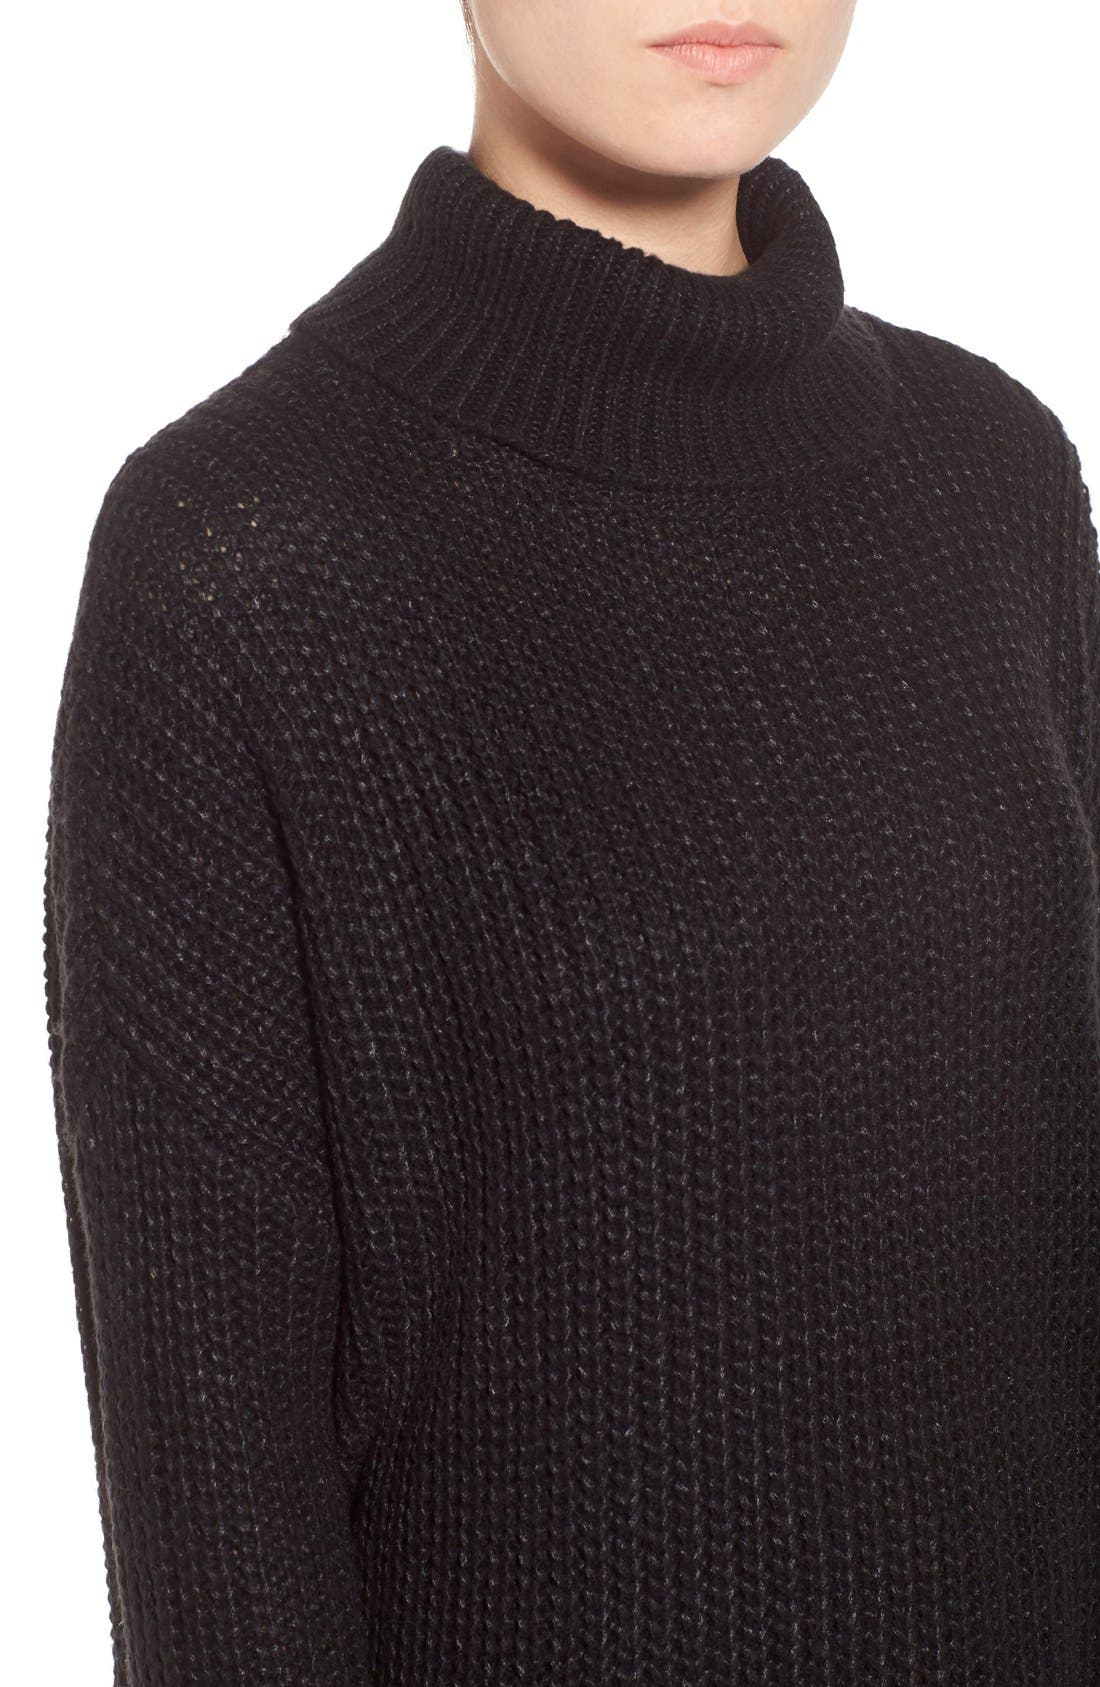 LEITH, Oversize Turtleneck Sweater, Alternate thumbnail 4, color, 001